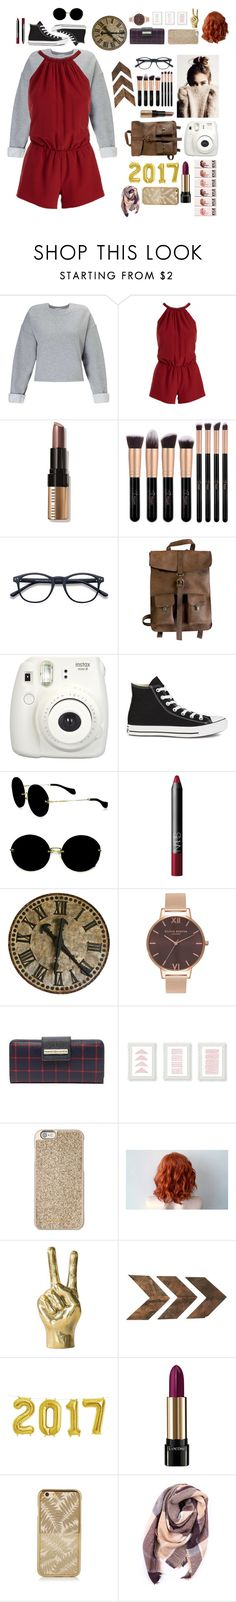 """tired being tired"" by faiaawaetford on Polyvore featuring Miss Selfridge, Joie, Bobbi Brown Cosmetics, Kjøre Project, Fujifilm, Converse, Miu Miu, NARS Cosmetics, Olivia Burton and Tommy Hilfiger"